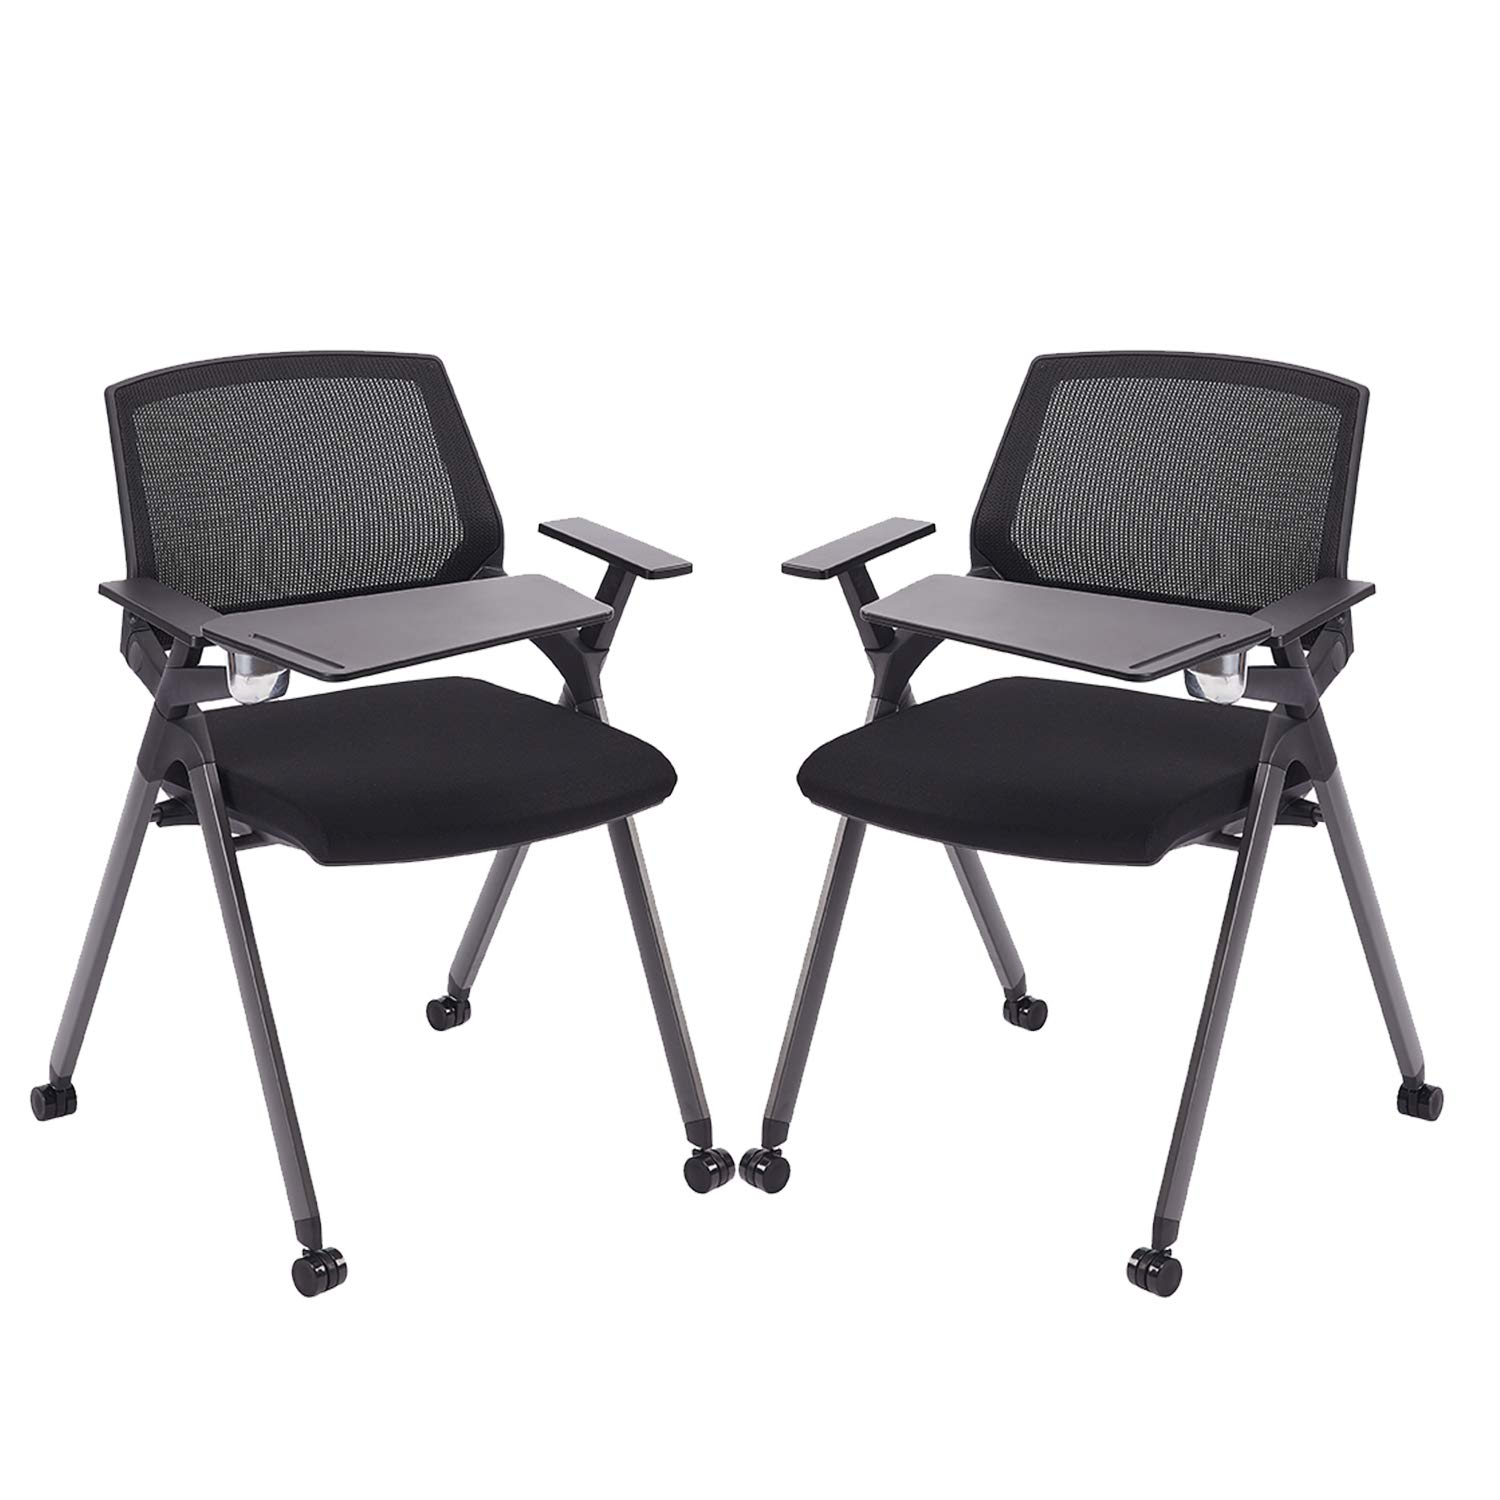 CLATINA Reception Stacking Chair Mesh Guest Nesting with Tablet and Caster Wheels for Office School Training Conference Waiting Room BIFMA Certified Black 2 Pack